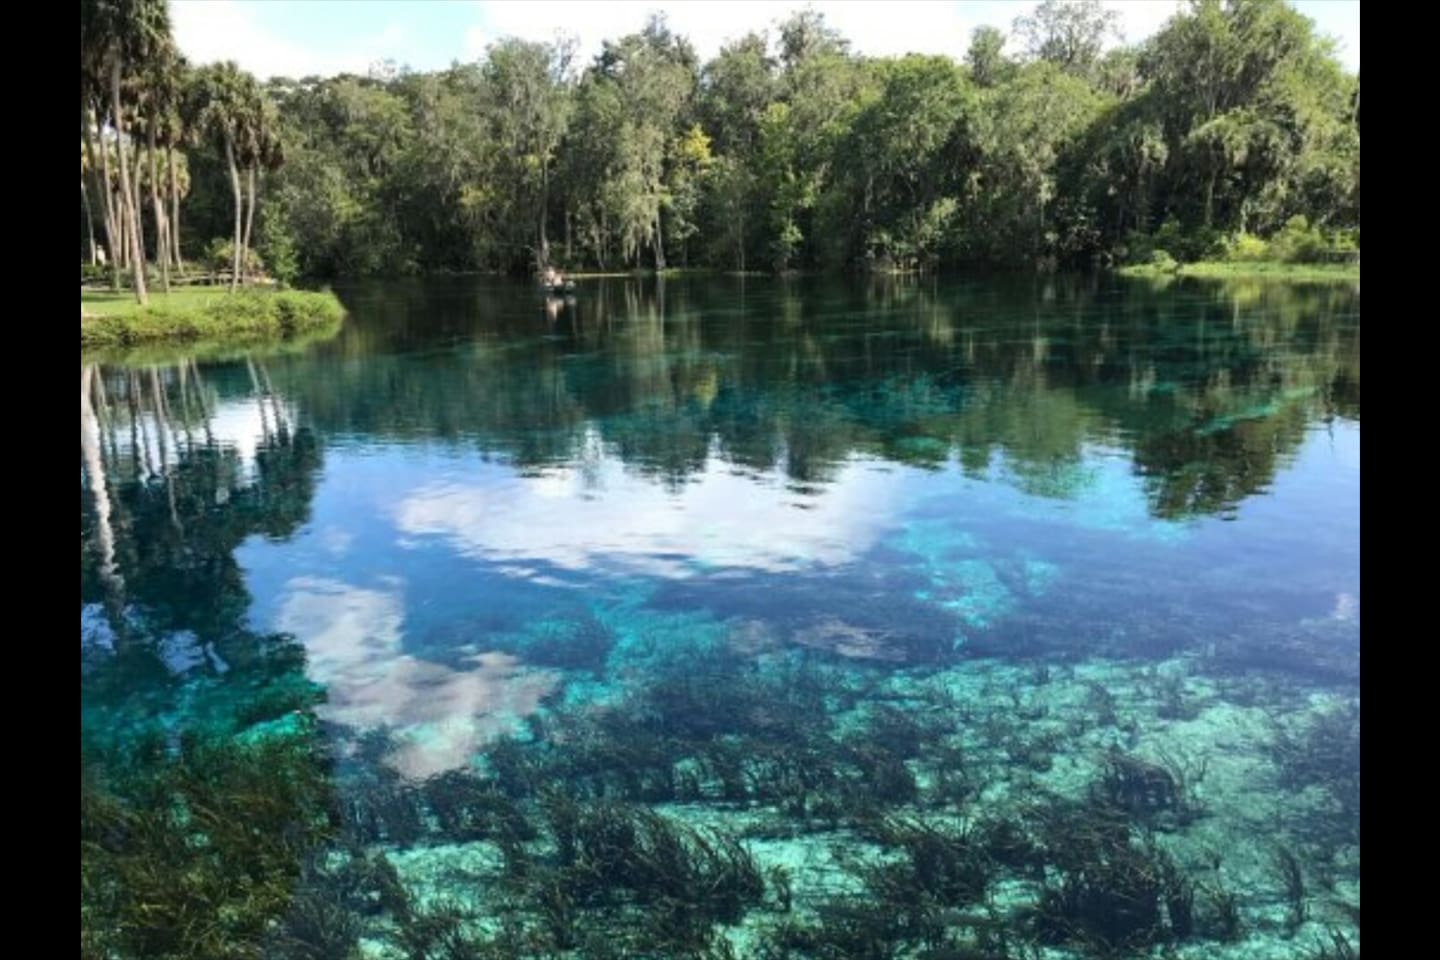 Silver Springs State Park Springs head. Less than 1/4 mile away!